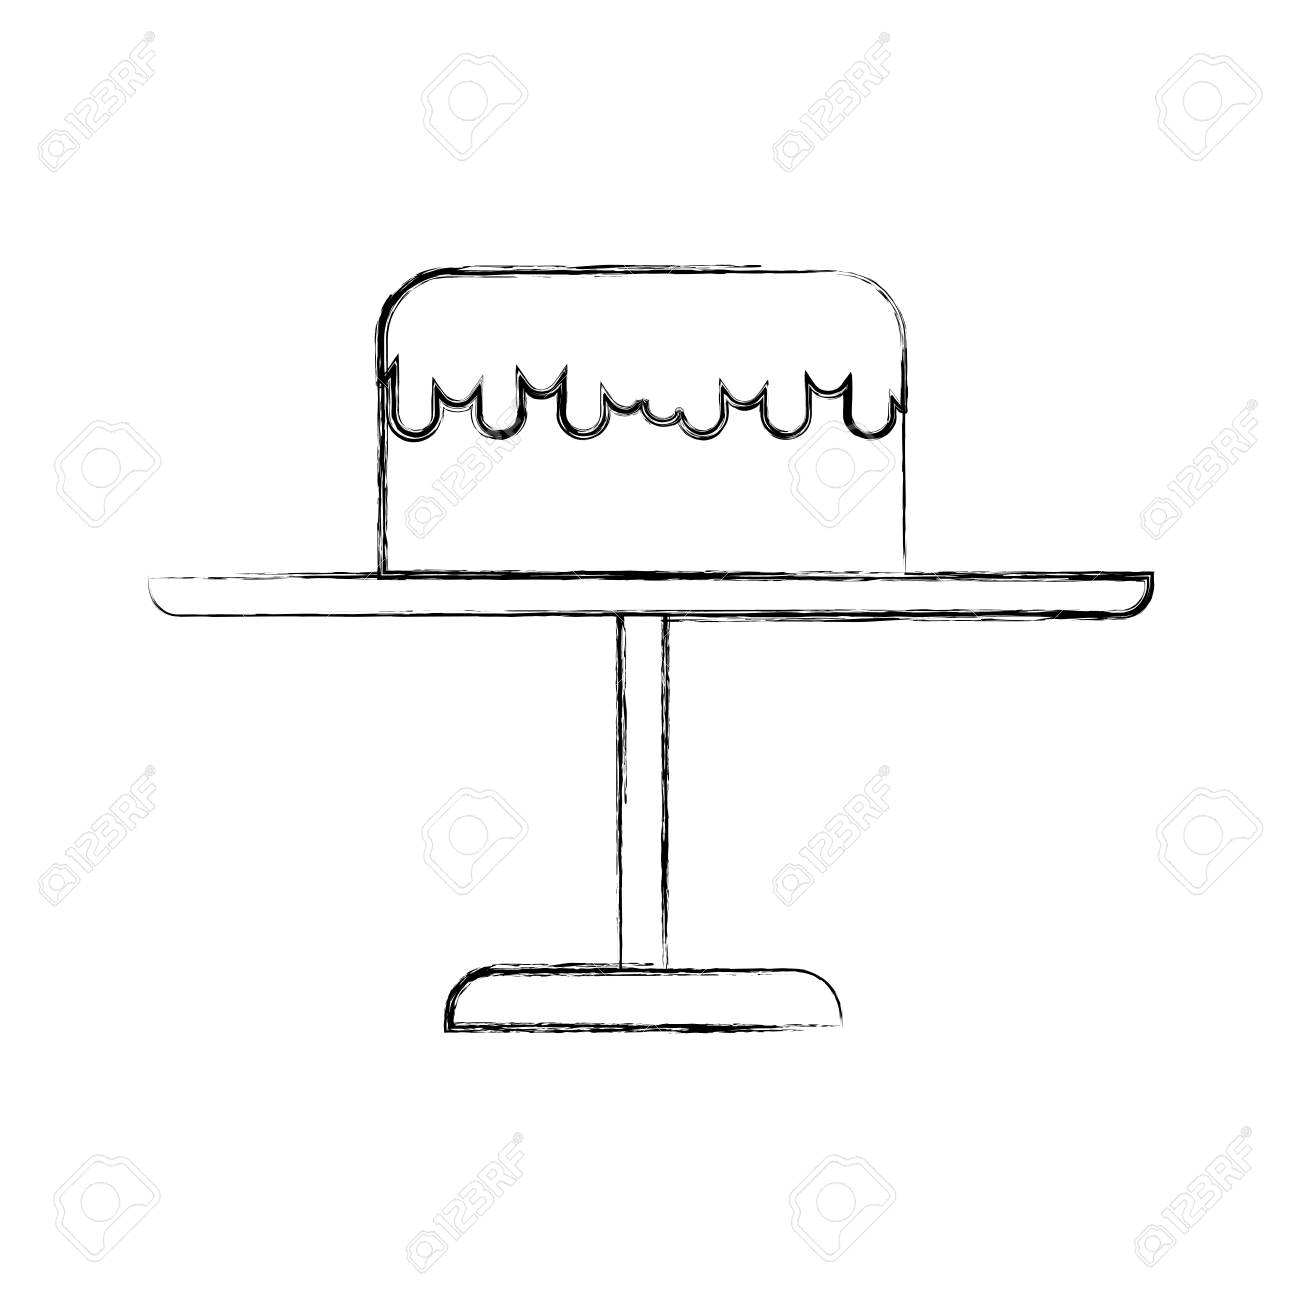 Cute Sketch Draw Stand Birthday Cake Cartoon Vector Graphic Design Royalty Free Cliparts Vectors And Stock Illustration Image 79413456